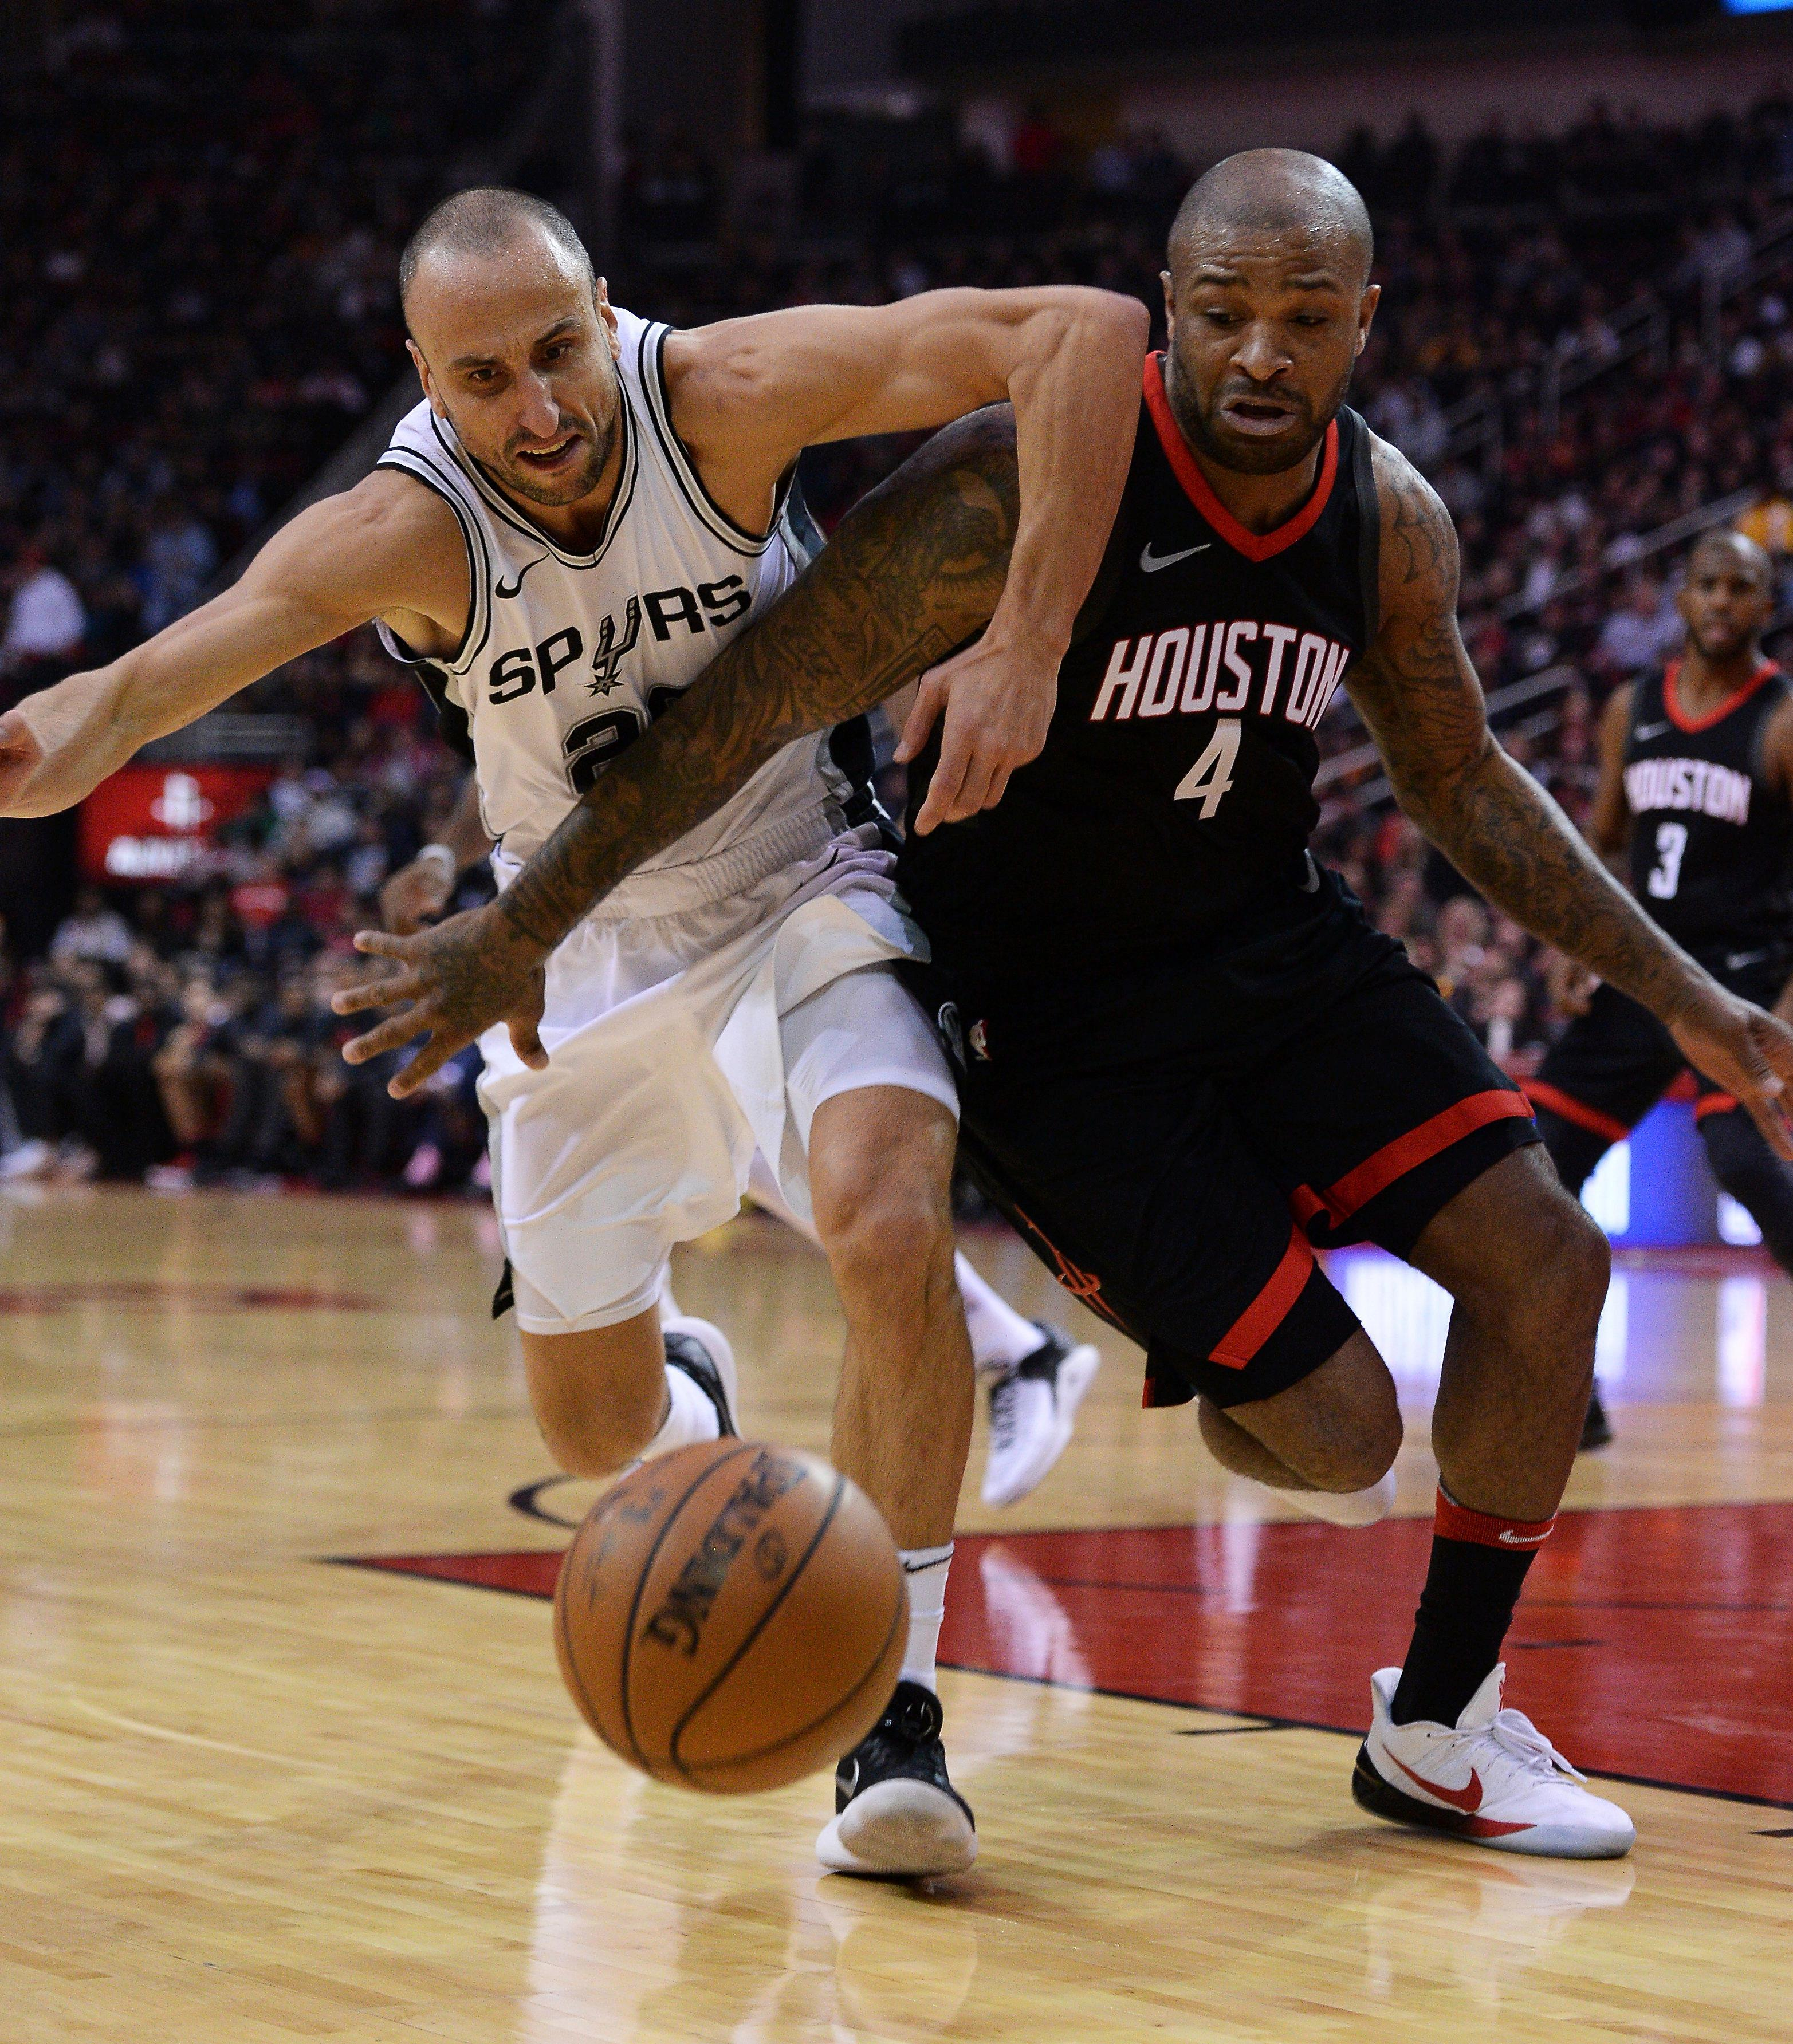 San Antonio Spurs guard Manu Ginobili, left, and Houston Rockets forward P.J. Tucker (4) battle for the ball in the first half of an NBA basketball game Friday, Dec. 15, 2017, in Houston. (AP Photo/George Bridges)